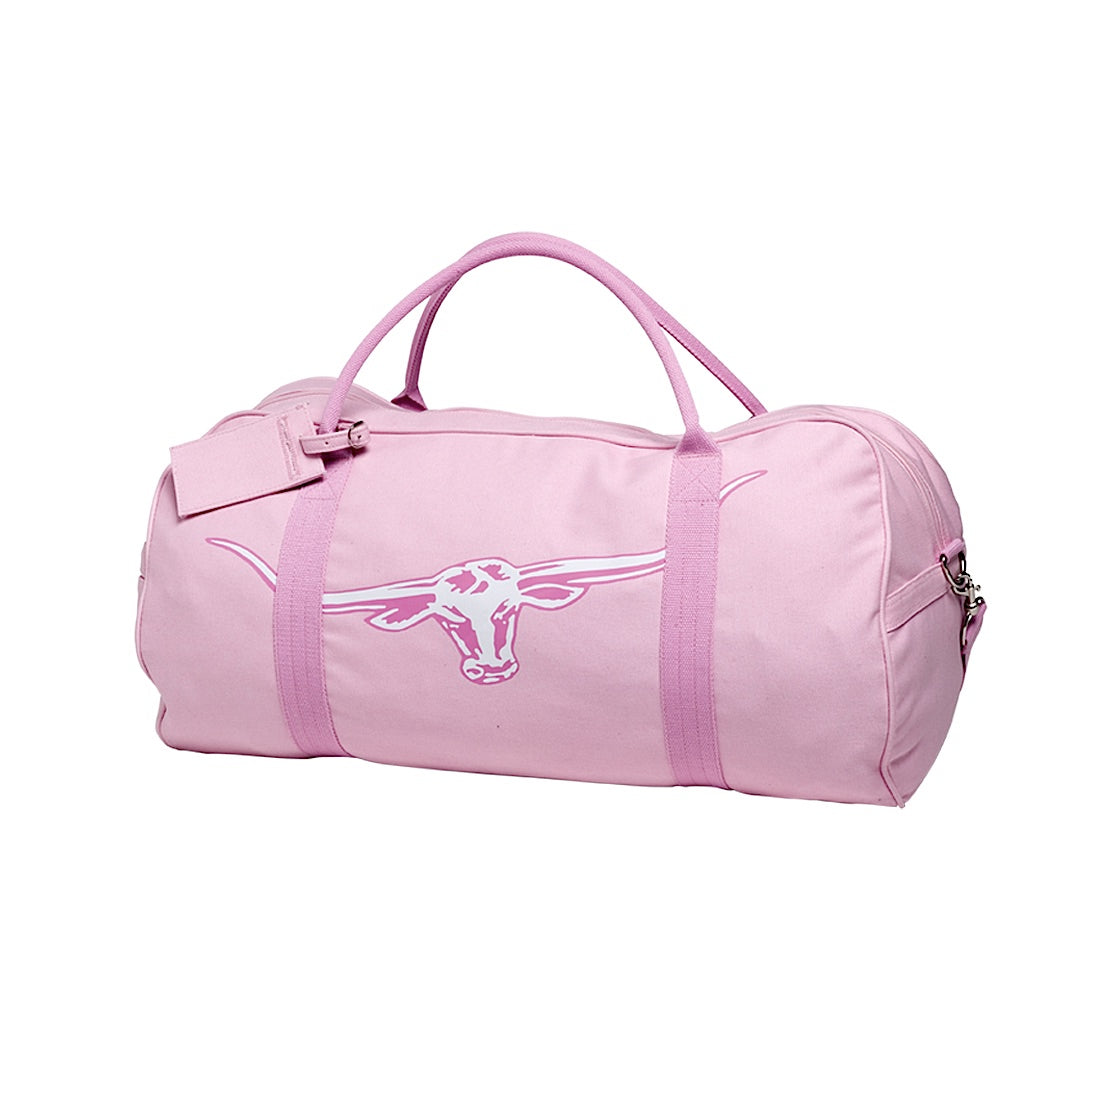 R.M.Williams Nanga Canvas Bag Pink CG288.69